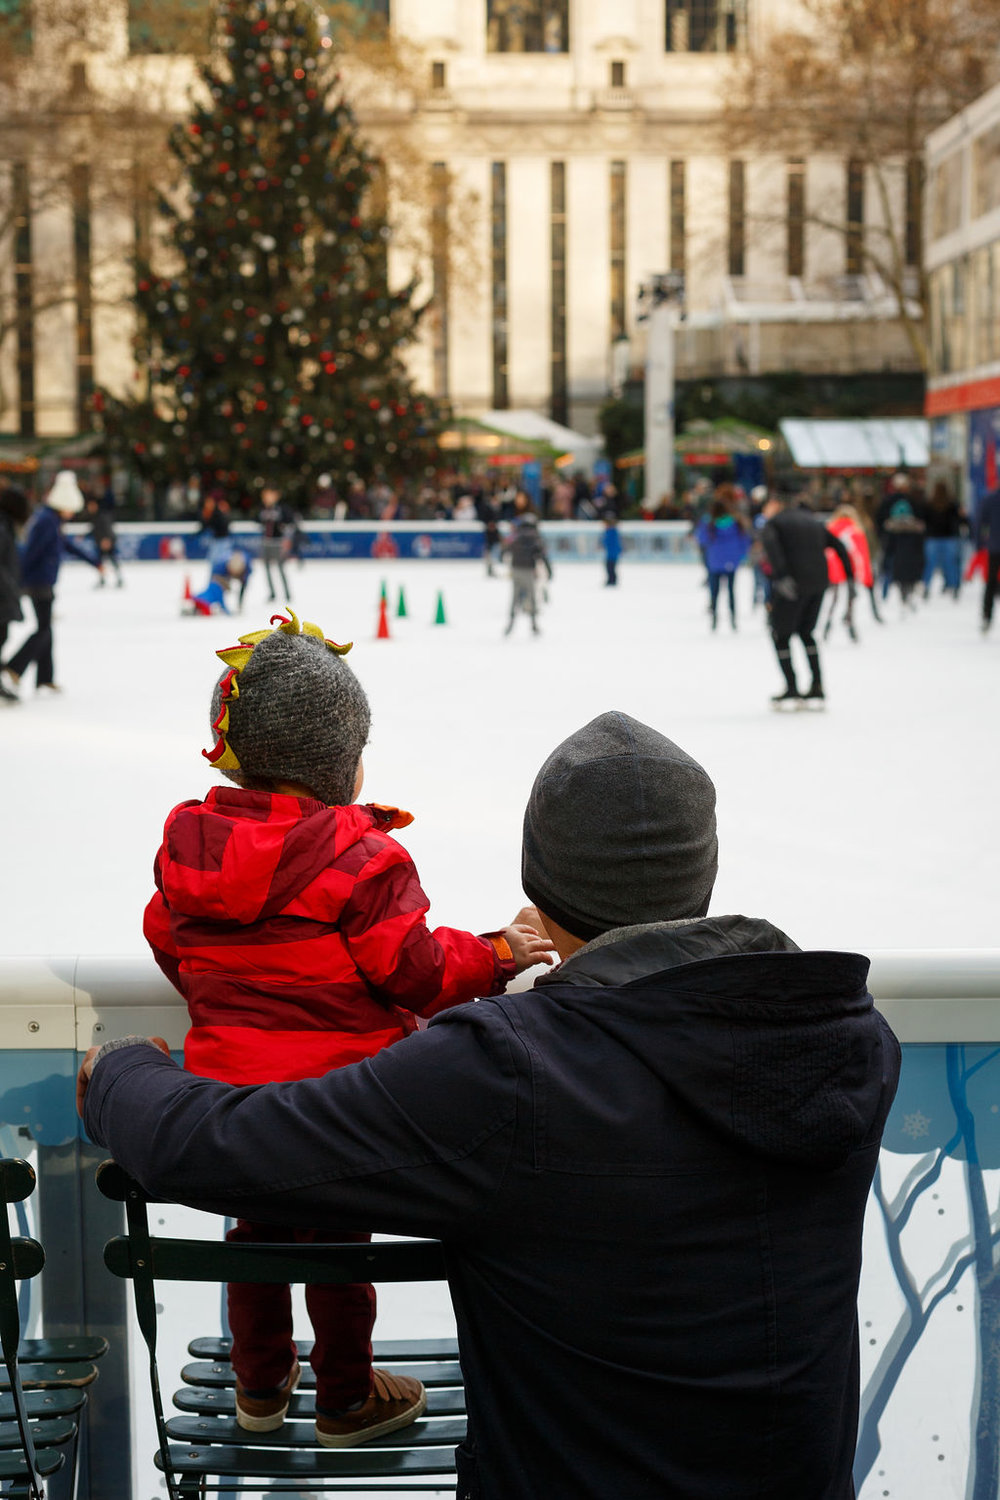 Toddler Ice Skating in Bryant Park, Casa de Fallon, Things to Do with kids in NYC.JPG